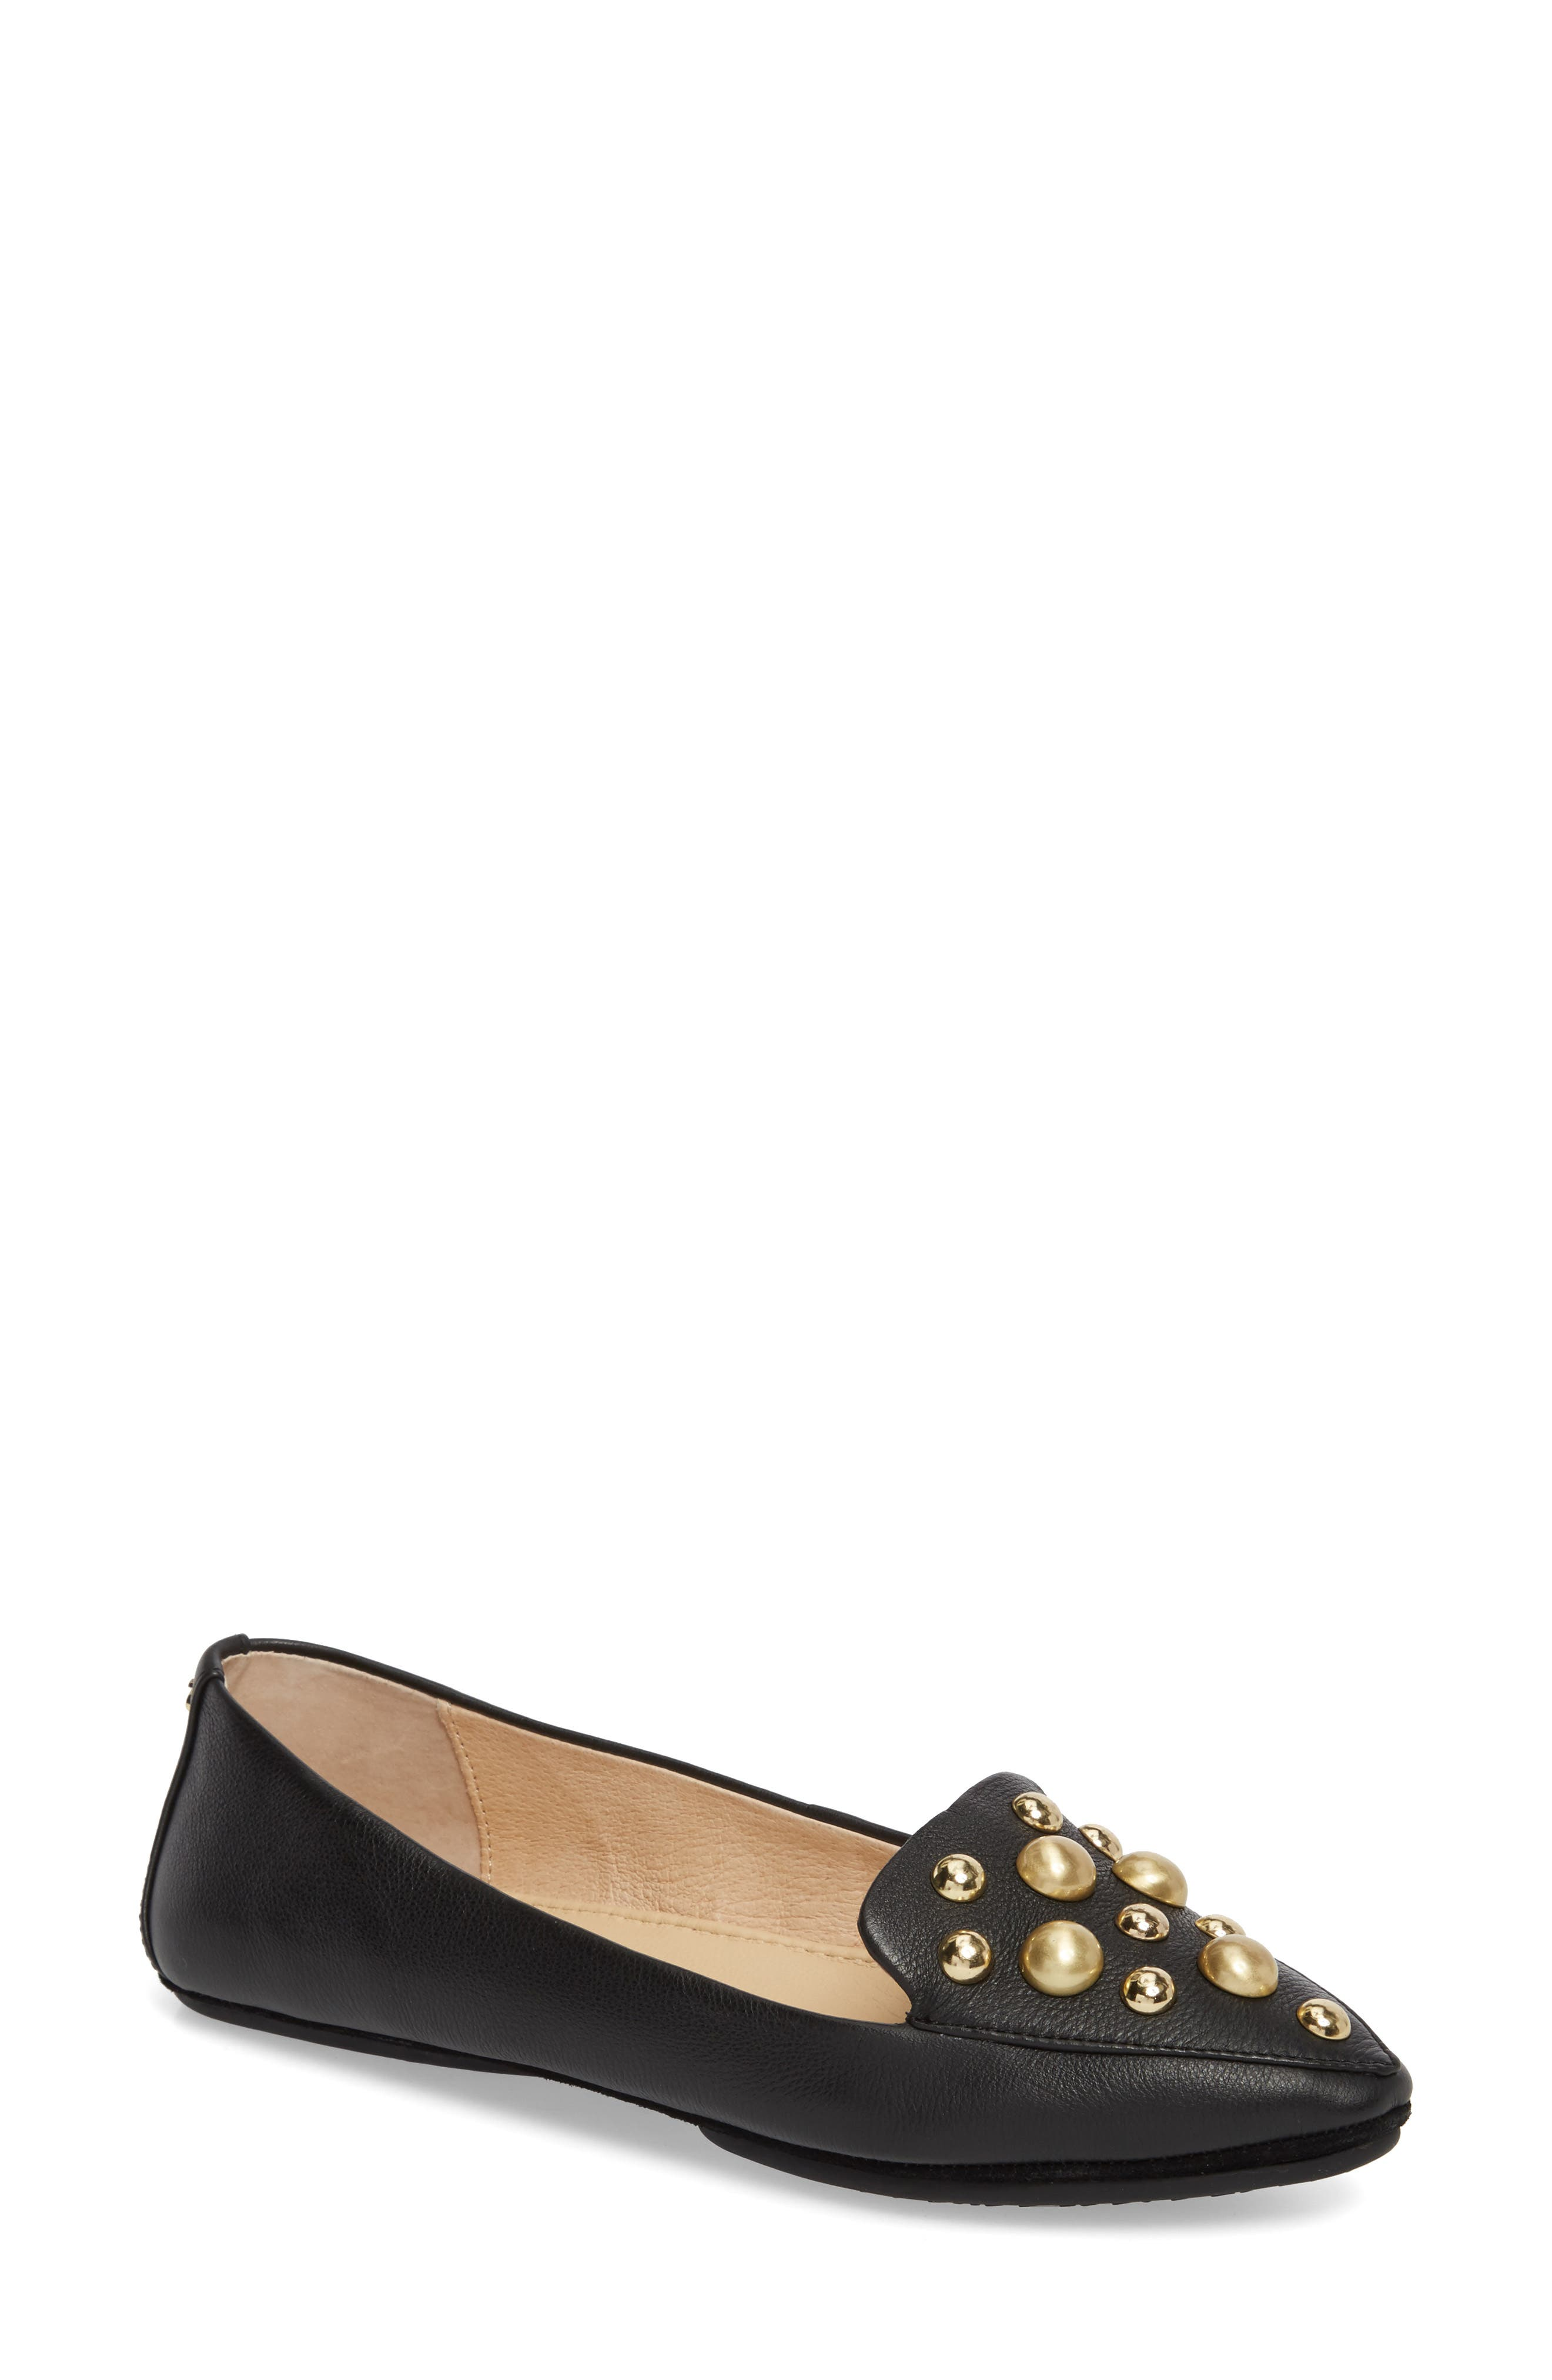 Vera Studded Loafer,                             Main thumbnail 1, color,                             002